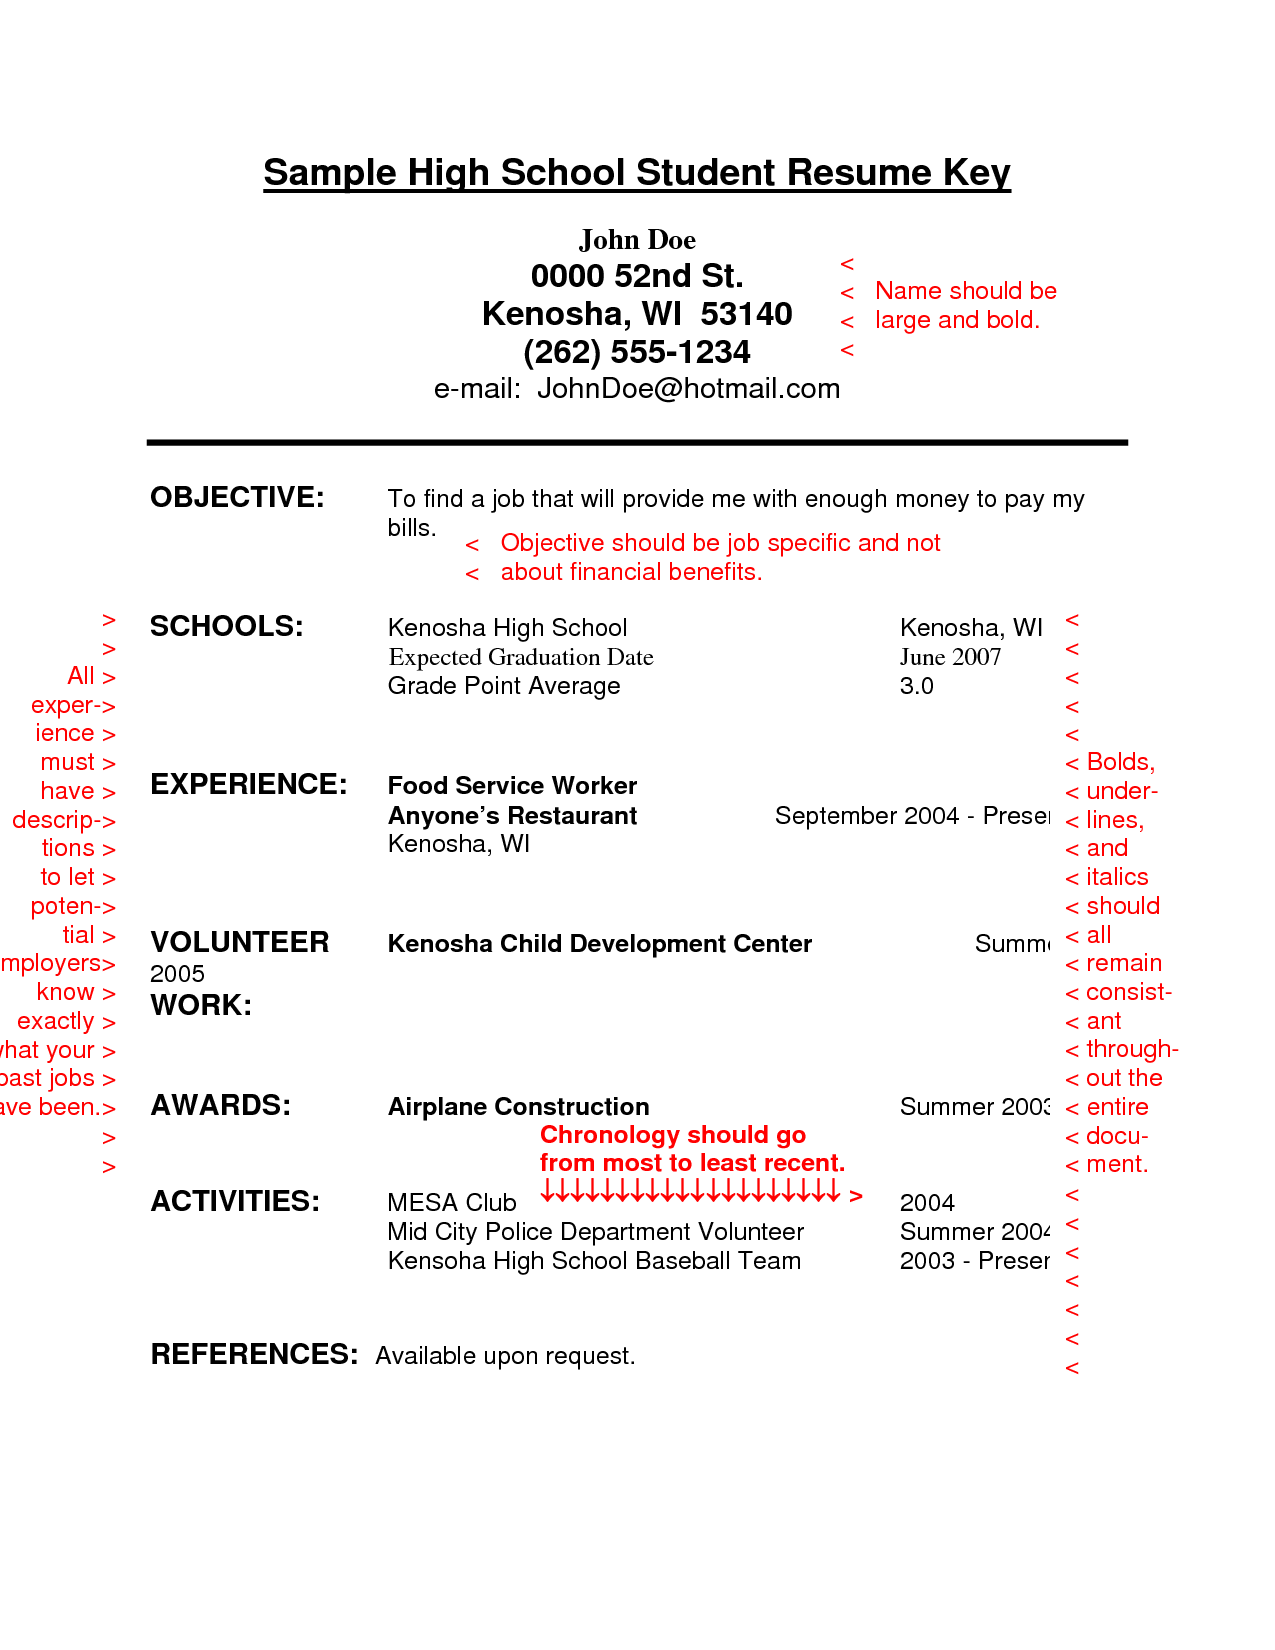 Resume Examples For High School Students  Resume Examples  Resume Examples For High School Students Examples Resume Resumeexamples  School Students